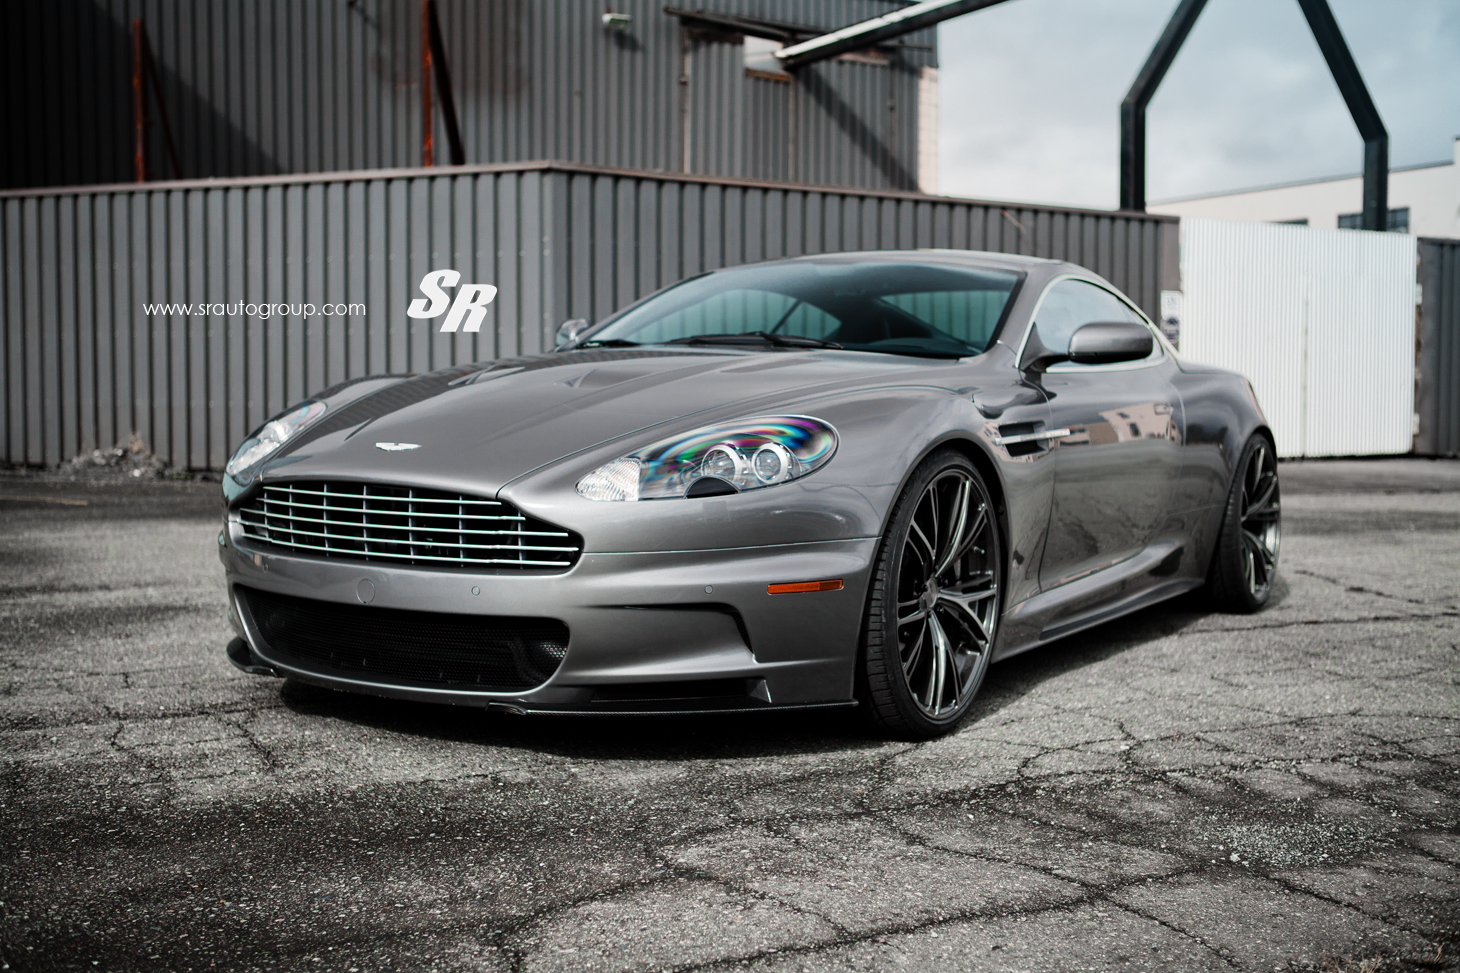 Aston Martin DBS on Steroids - autoevolution